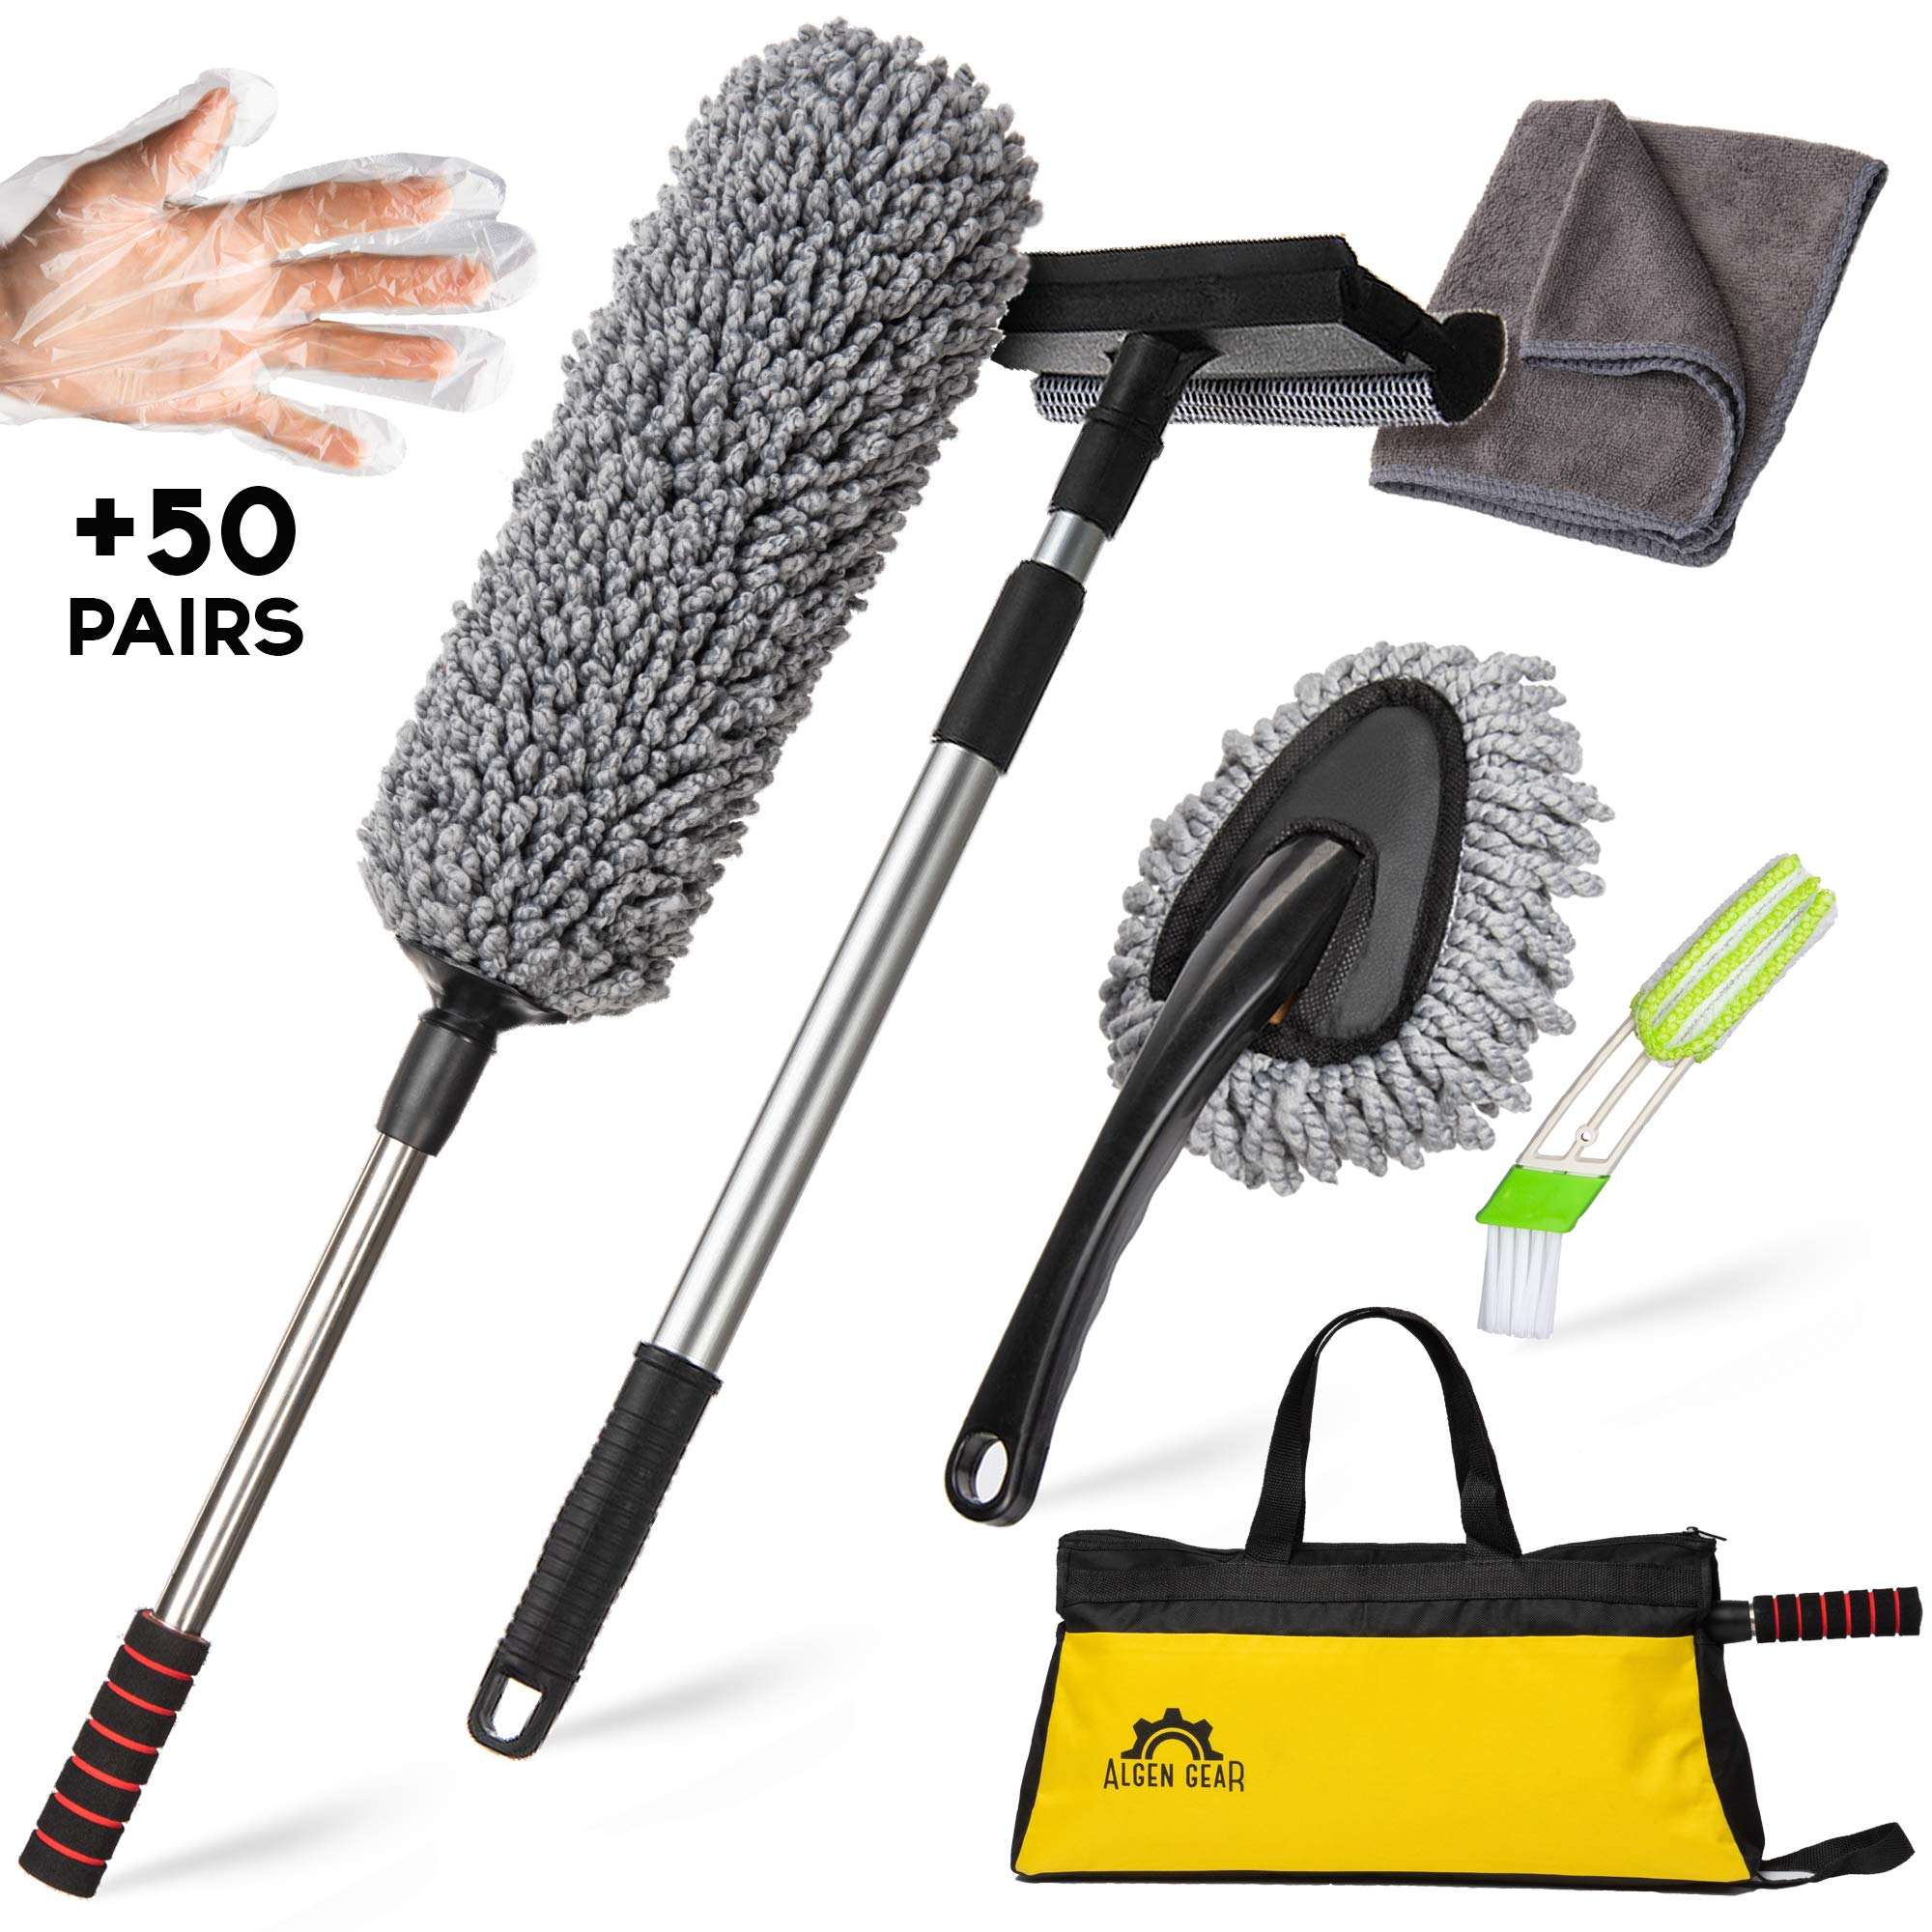 Algen Gear Car Duster Kit - Multipurpose (7pc) Car Cleaning Kit with Bag - Professional Car Wash Kit - Excellent for Home Office Auto Motorcycle Truck - Exterior or Interior Use Car Cleaning Tools